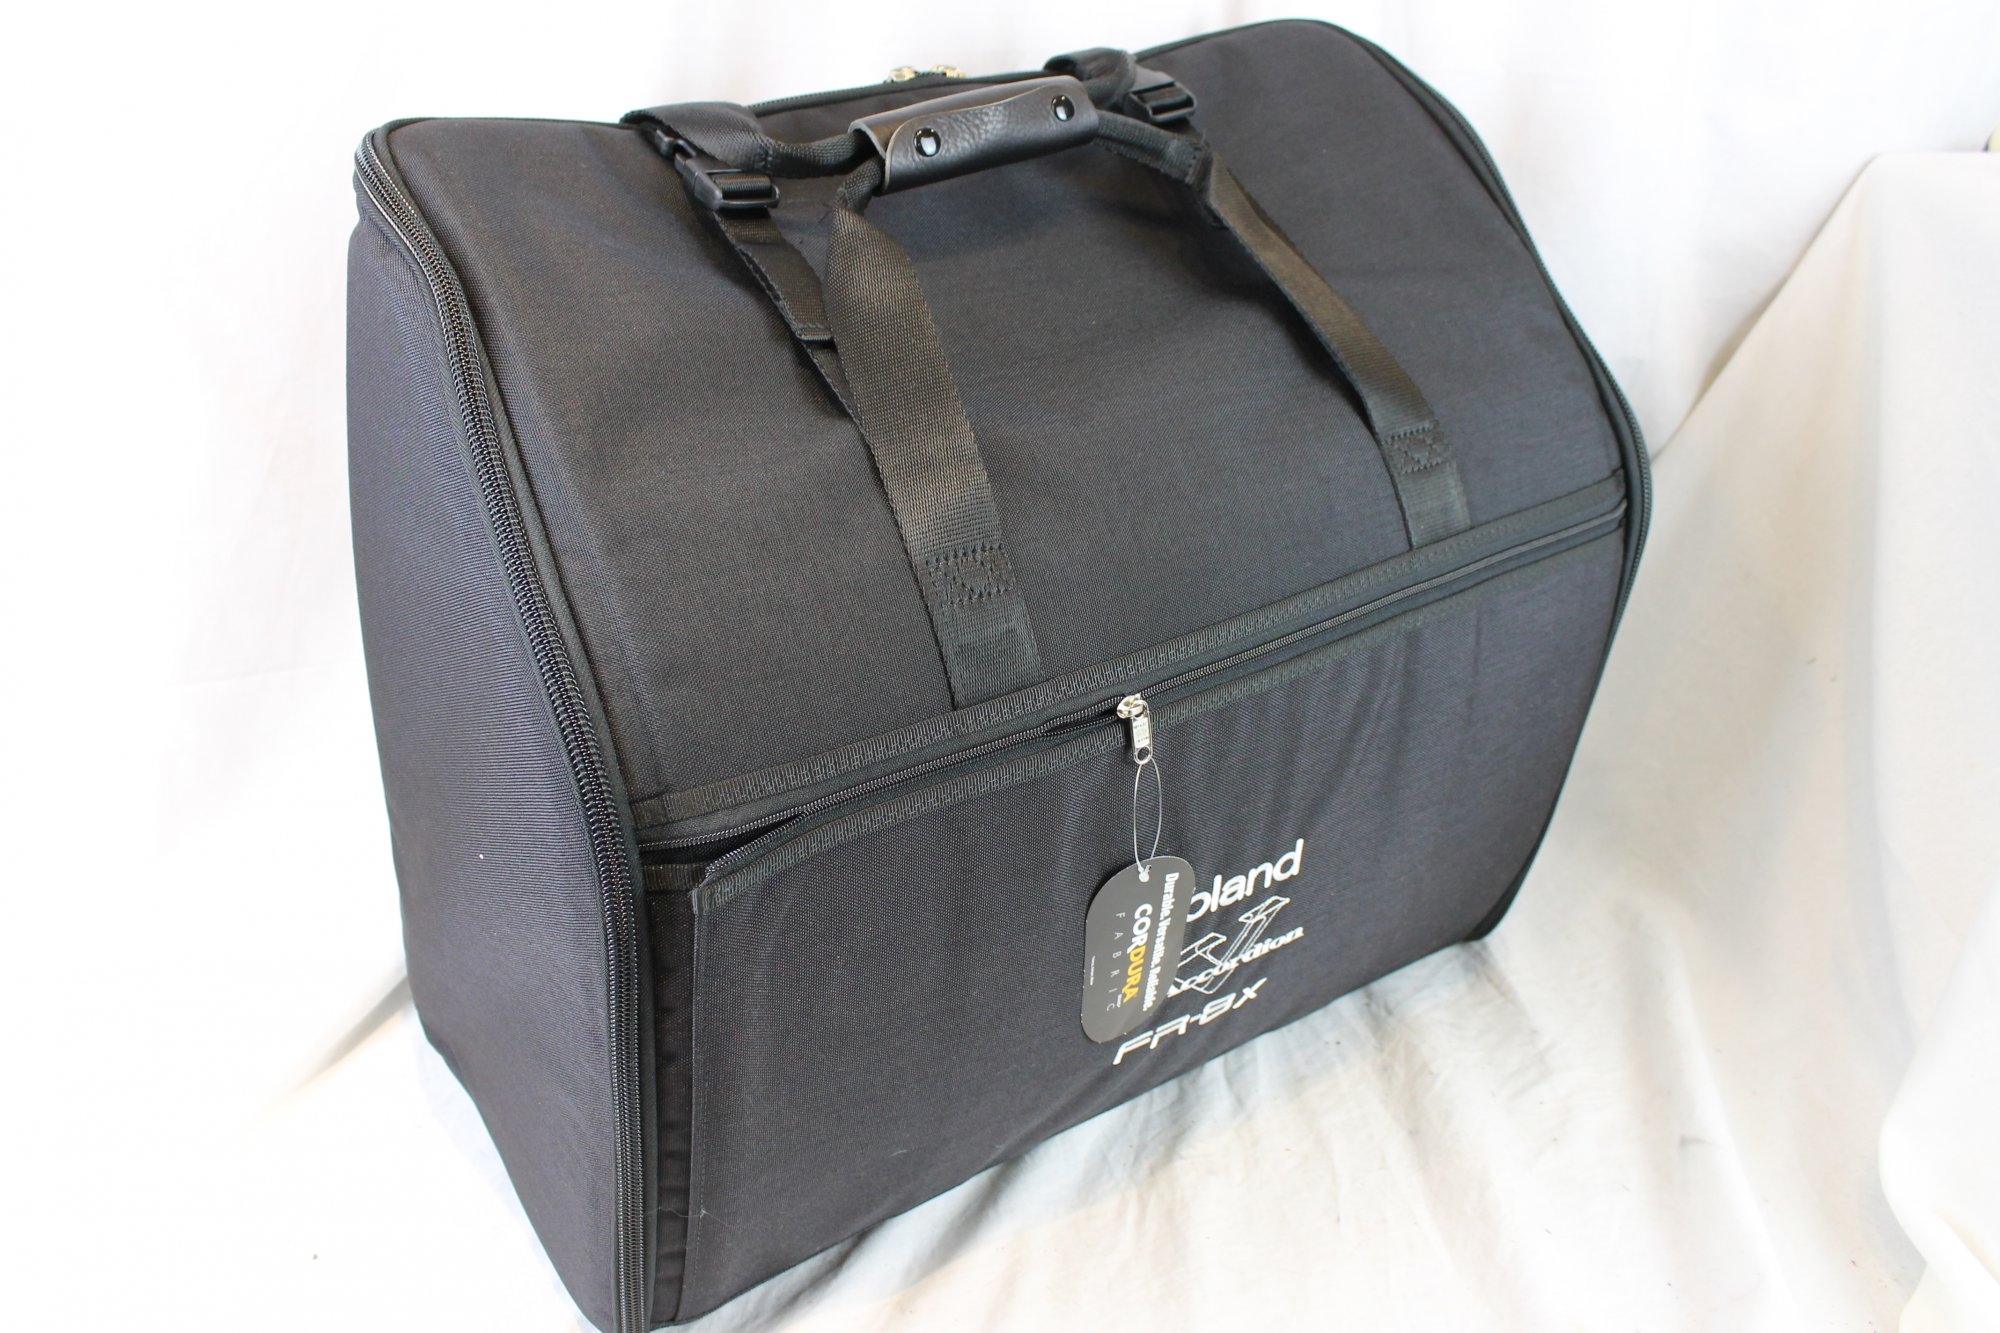 NEW Black Roland Gig Bag for Accordion 21 x 8.5 x 18 fits Roland FR-8x or FR-7x